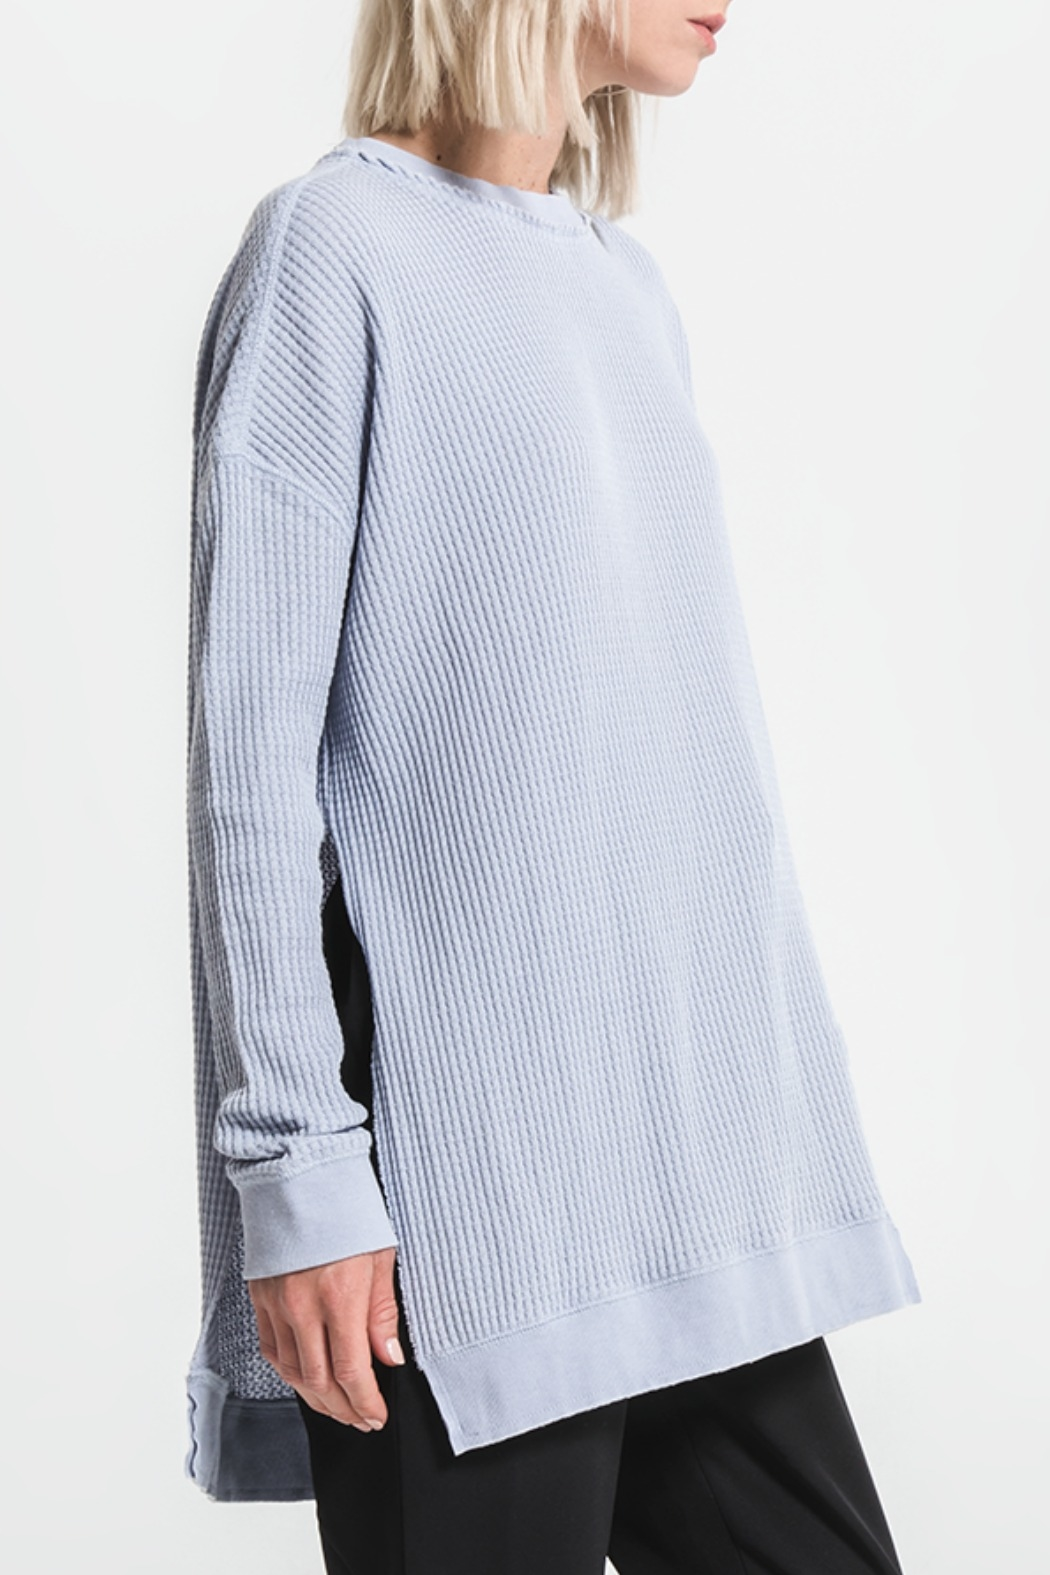 Others Follow  Periwinkle Long Sleeve Thermal Top - Side Cropped Image